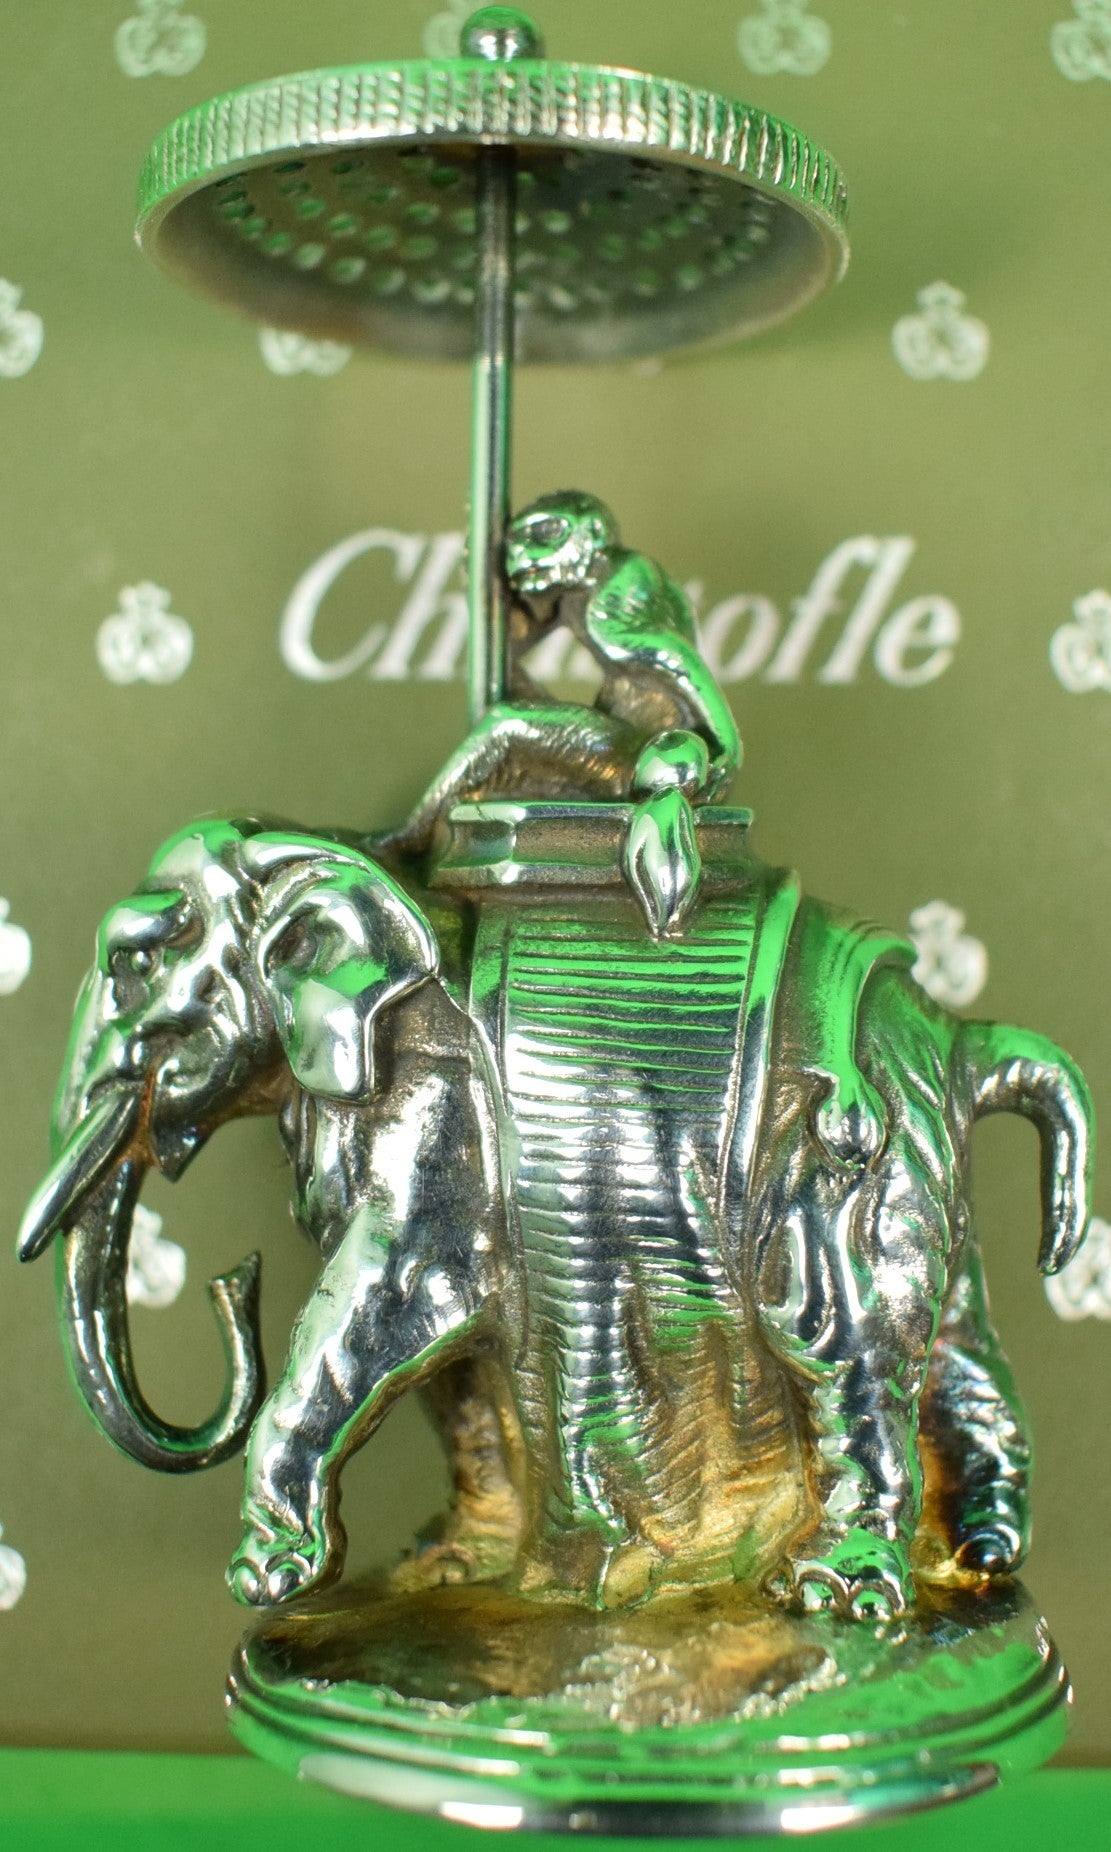 Christofle Silverplate Chinoiserie Monkey on Elephant w/ 'Toothpick' Parasol New in Box! (Sold!)